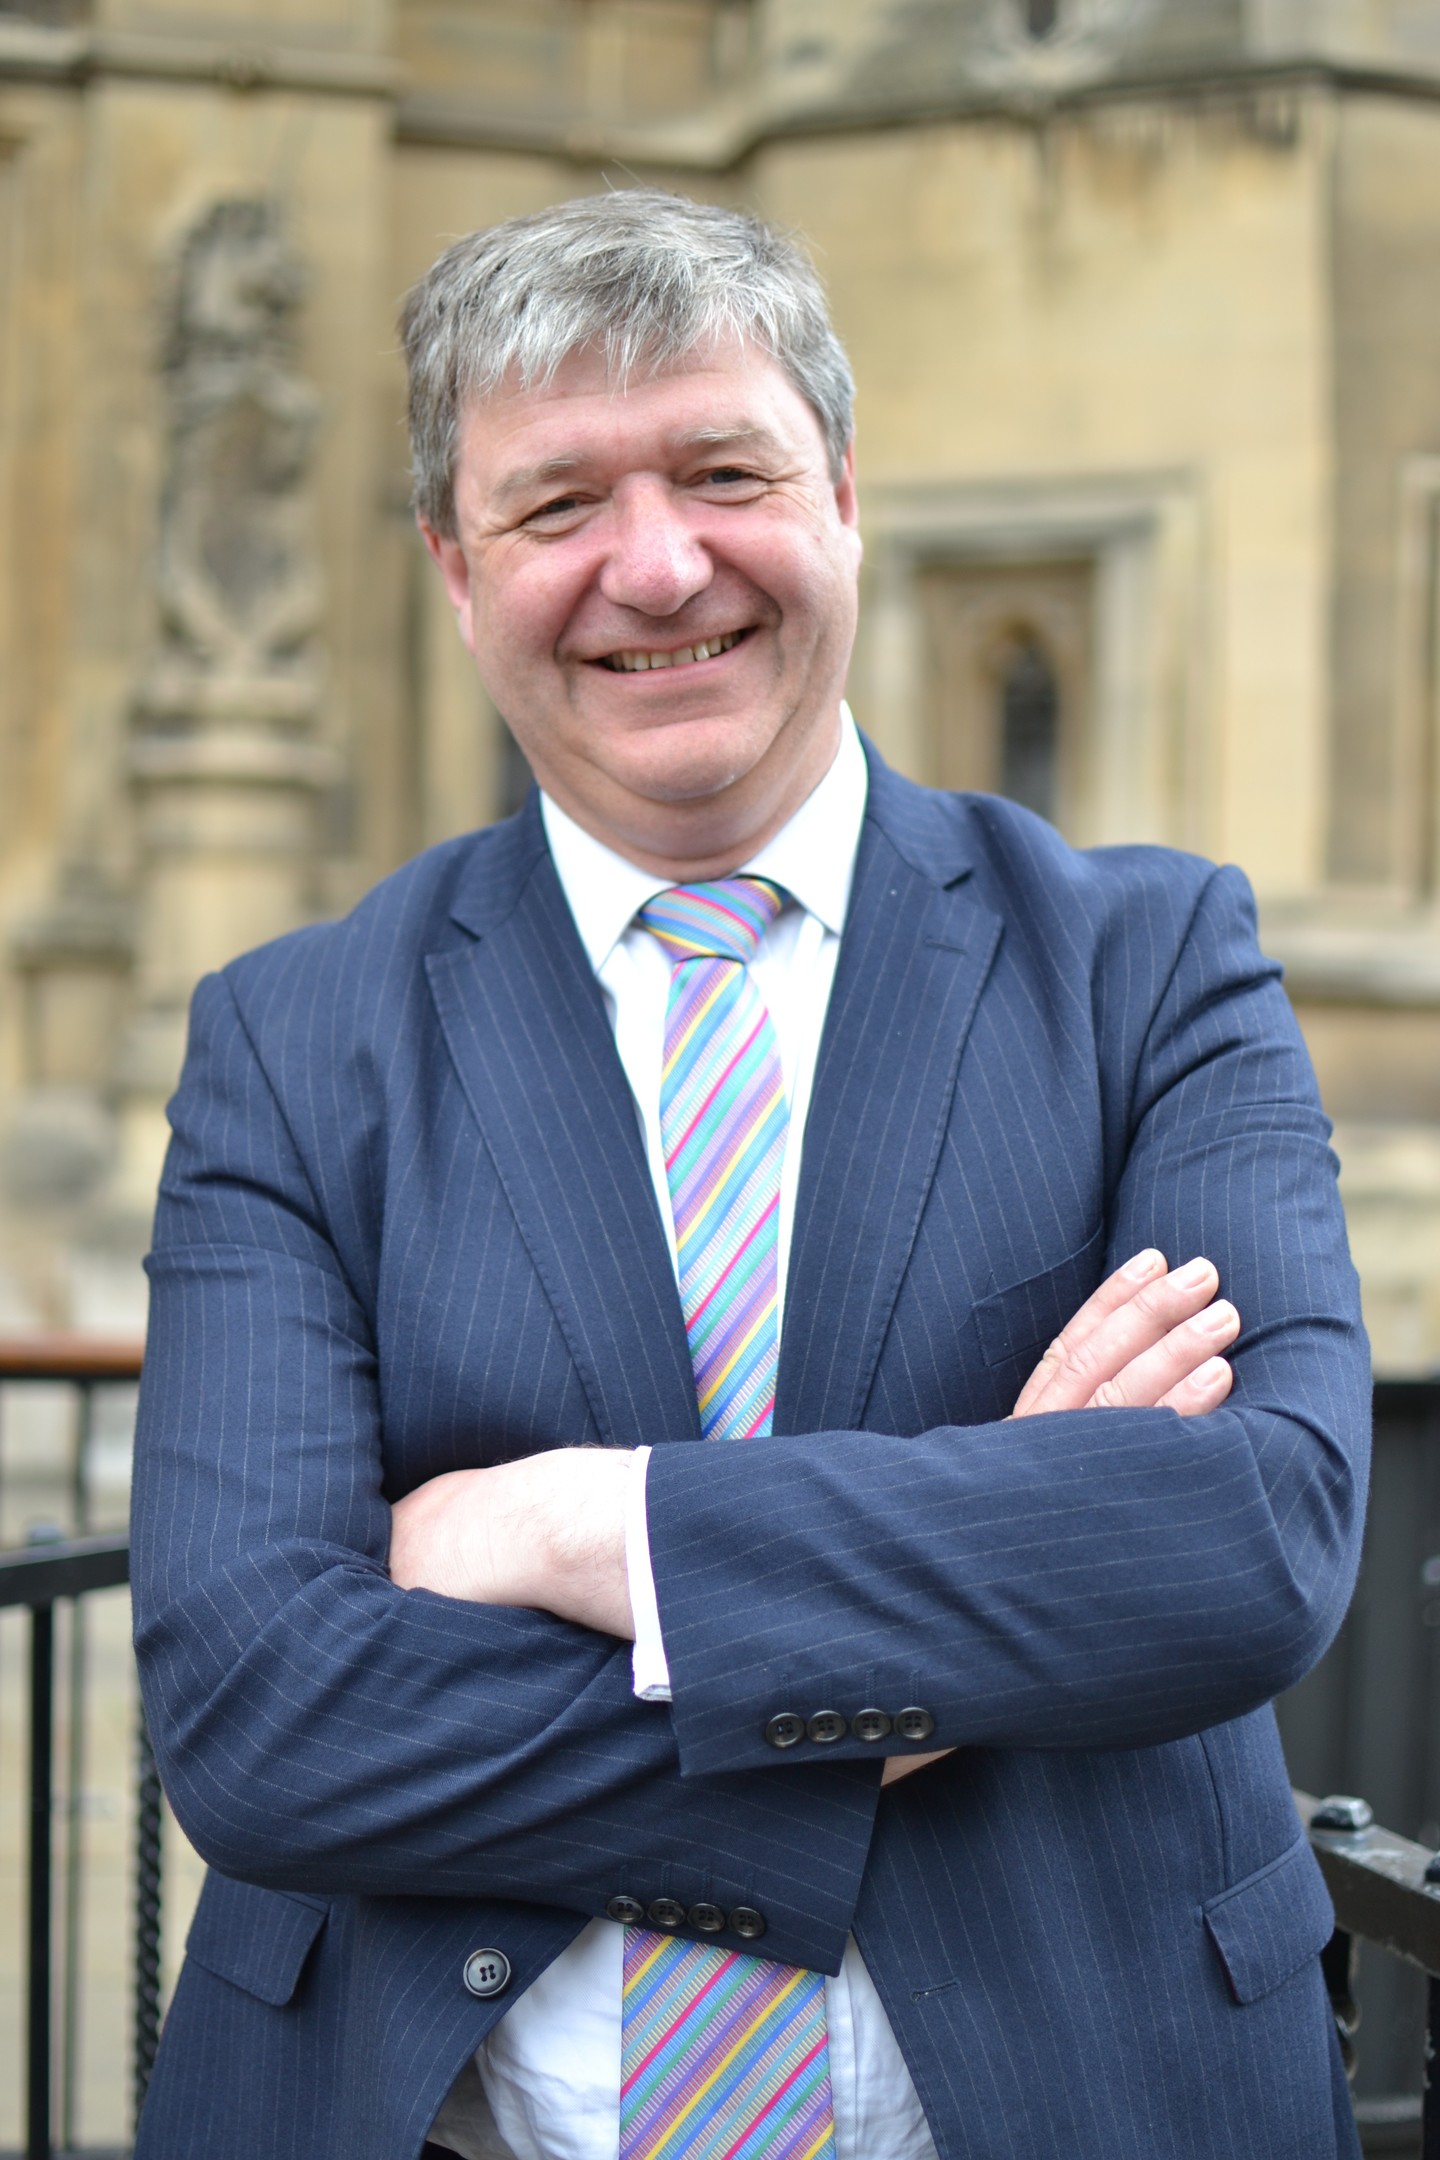 Northern Isles MP Alistair Carmichael